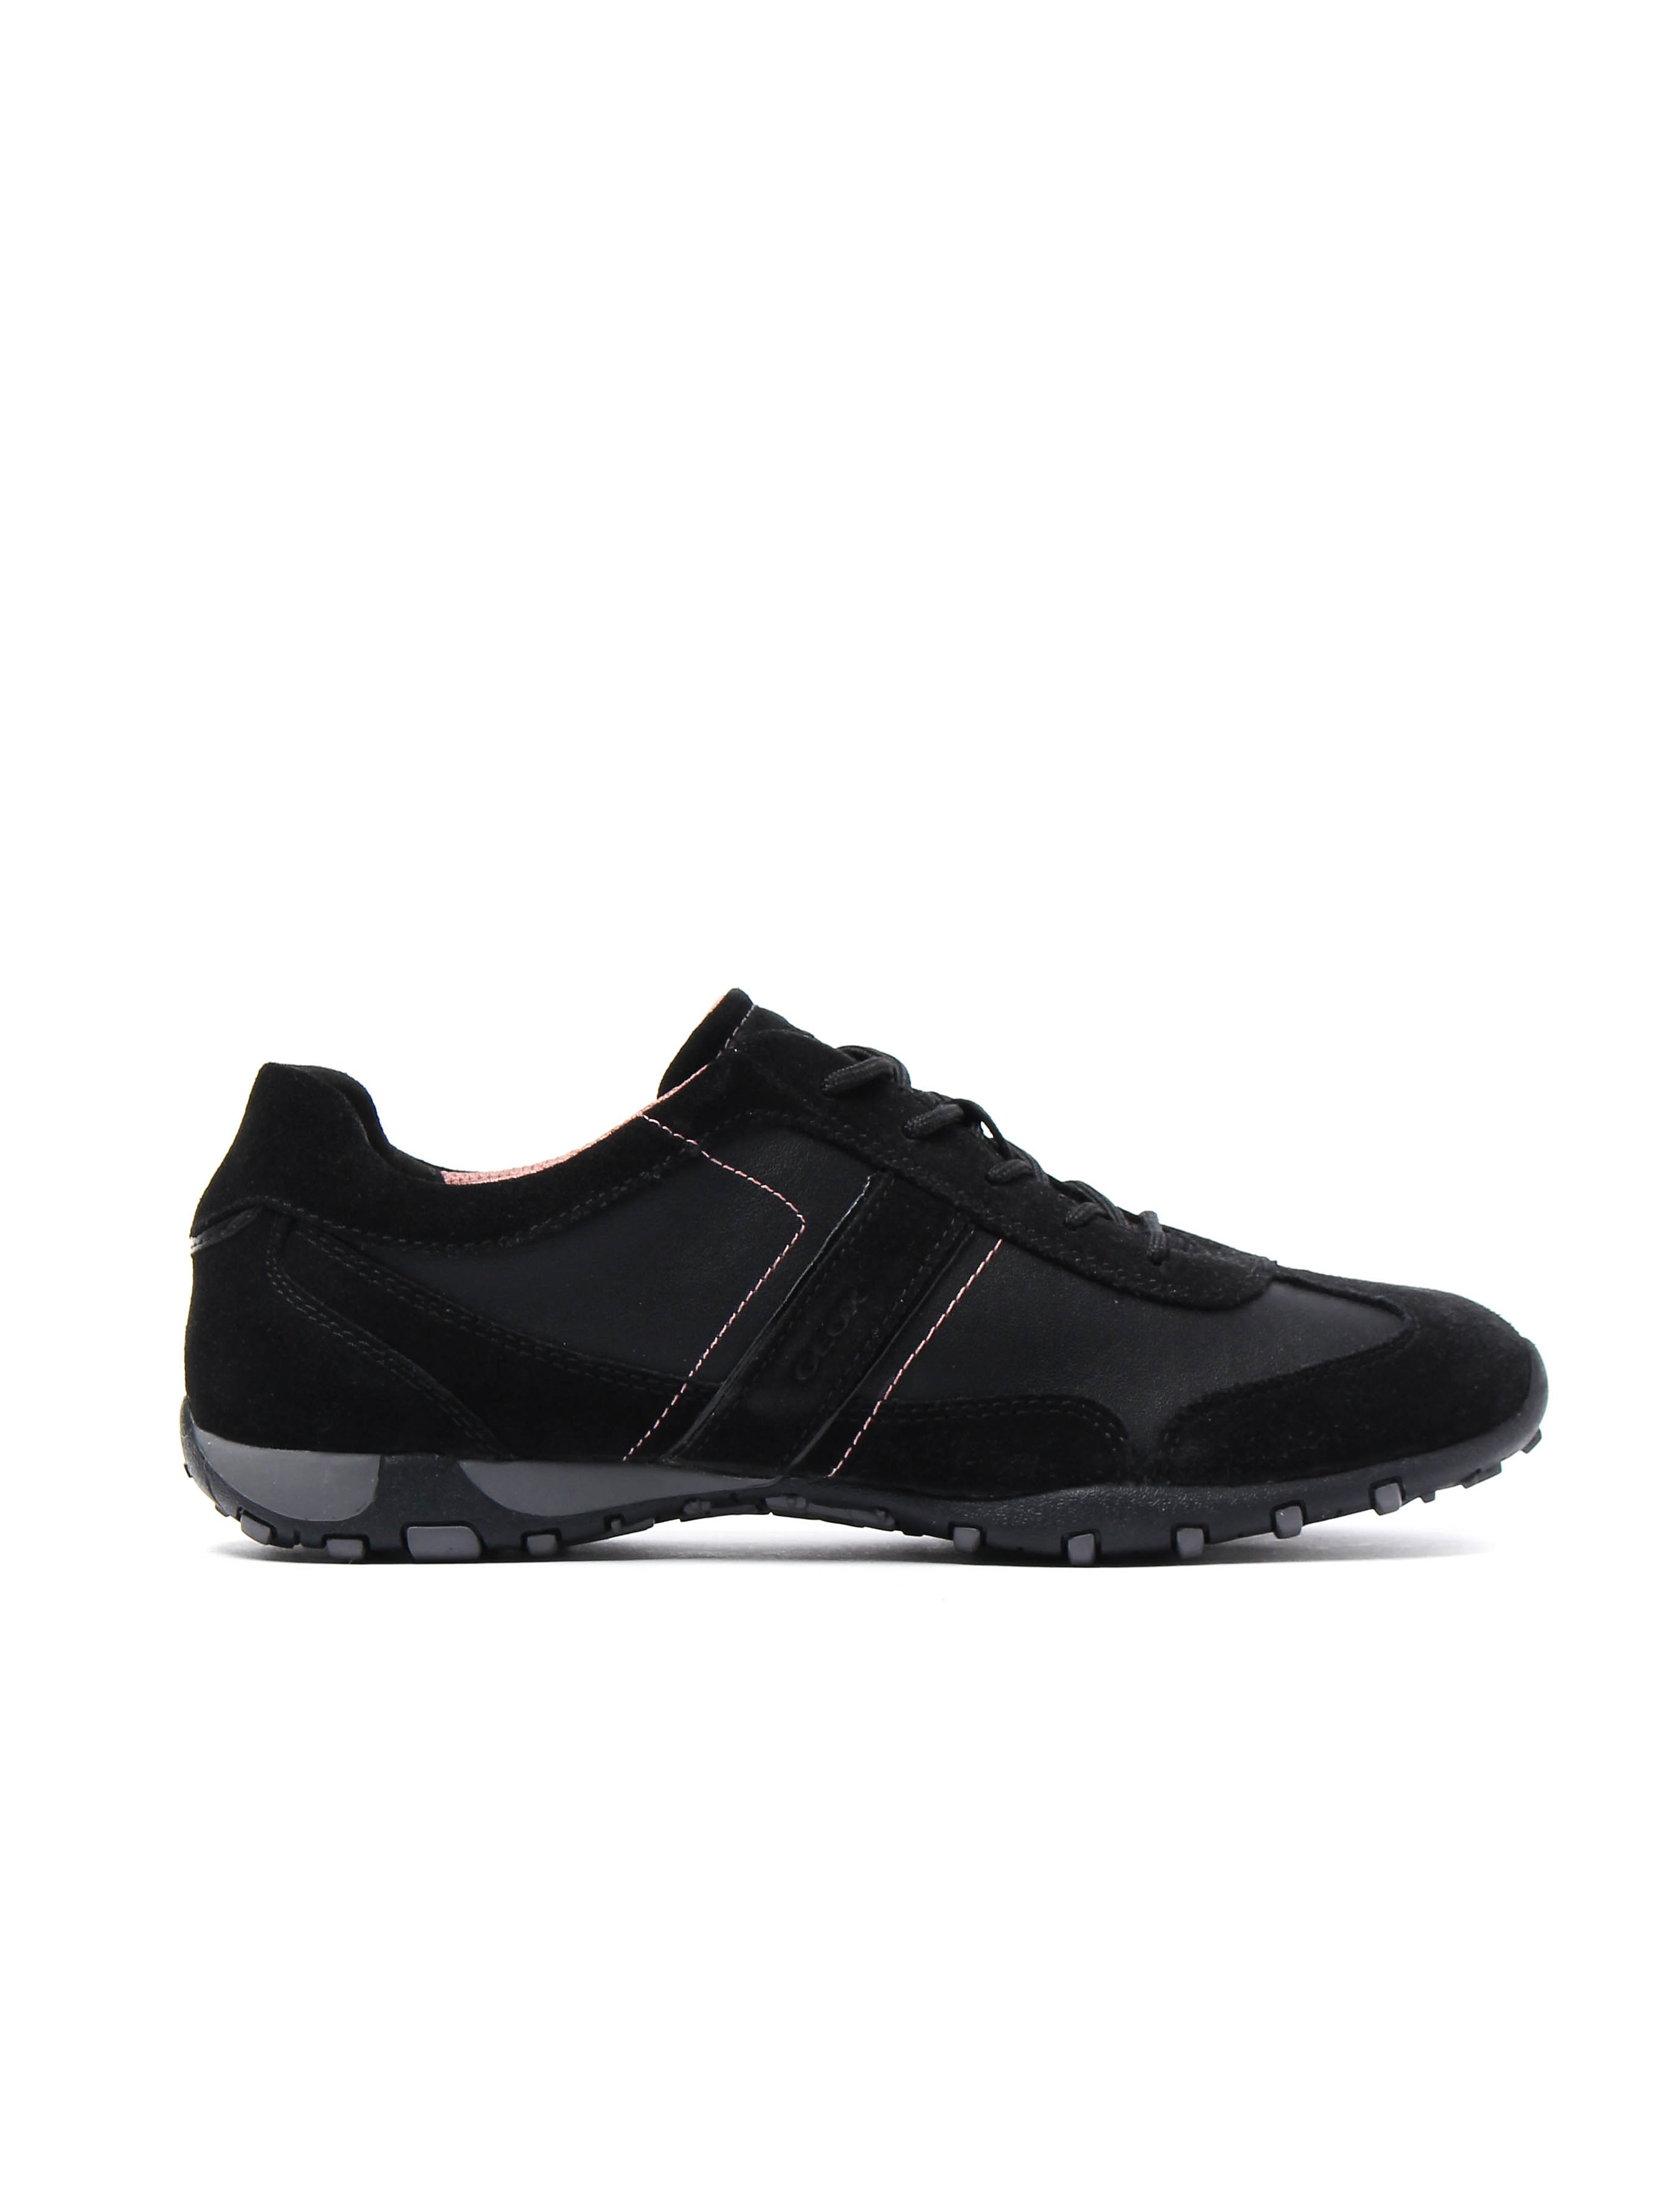 Geox Women's D Freccia Trainers - Black Suede